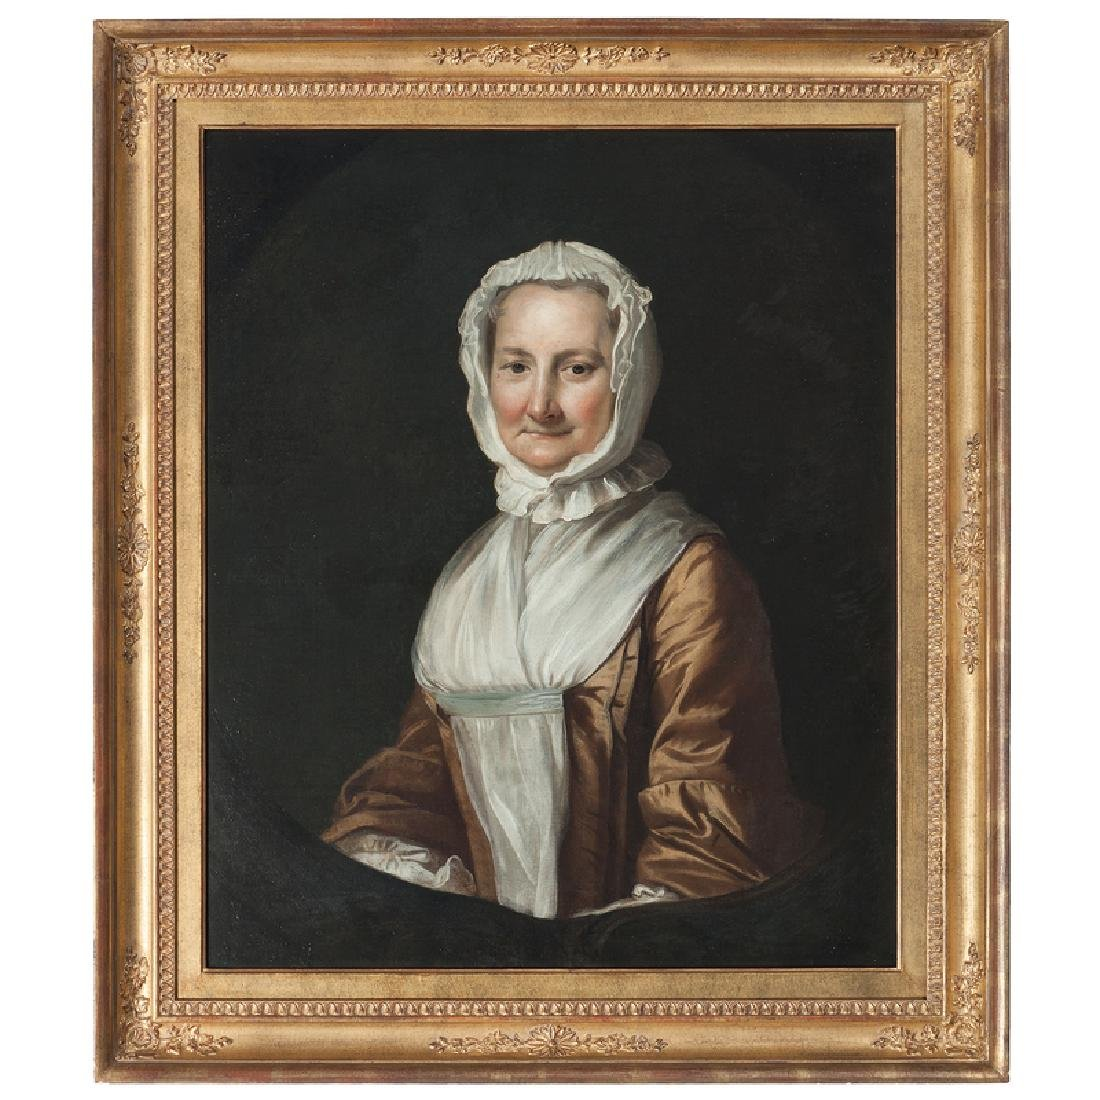 American Portrait of a Woman in a White Bonnet